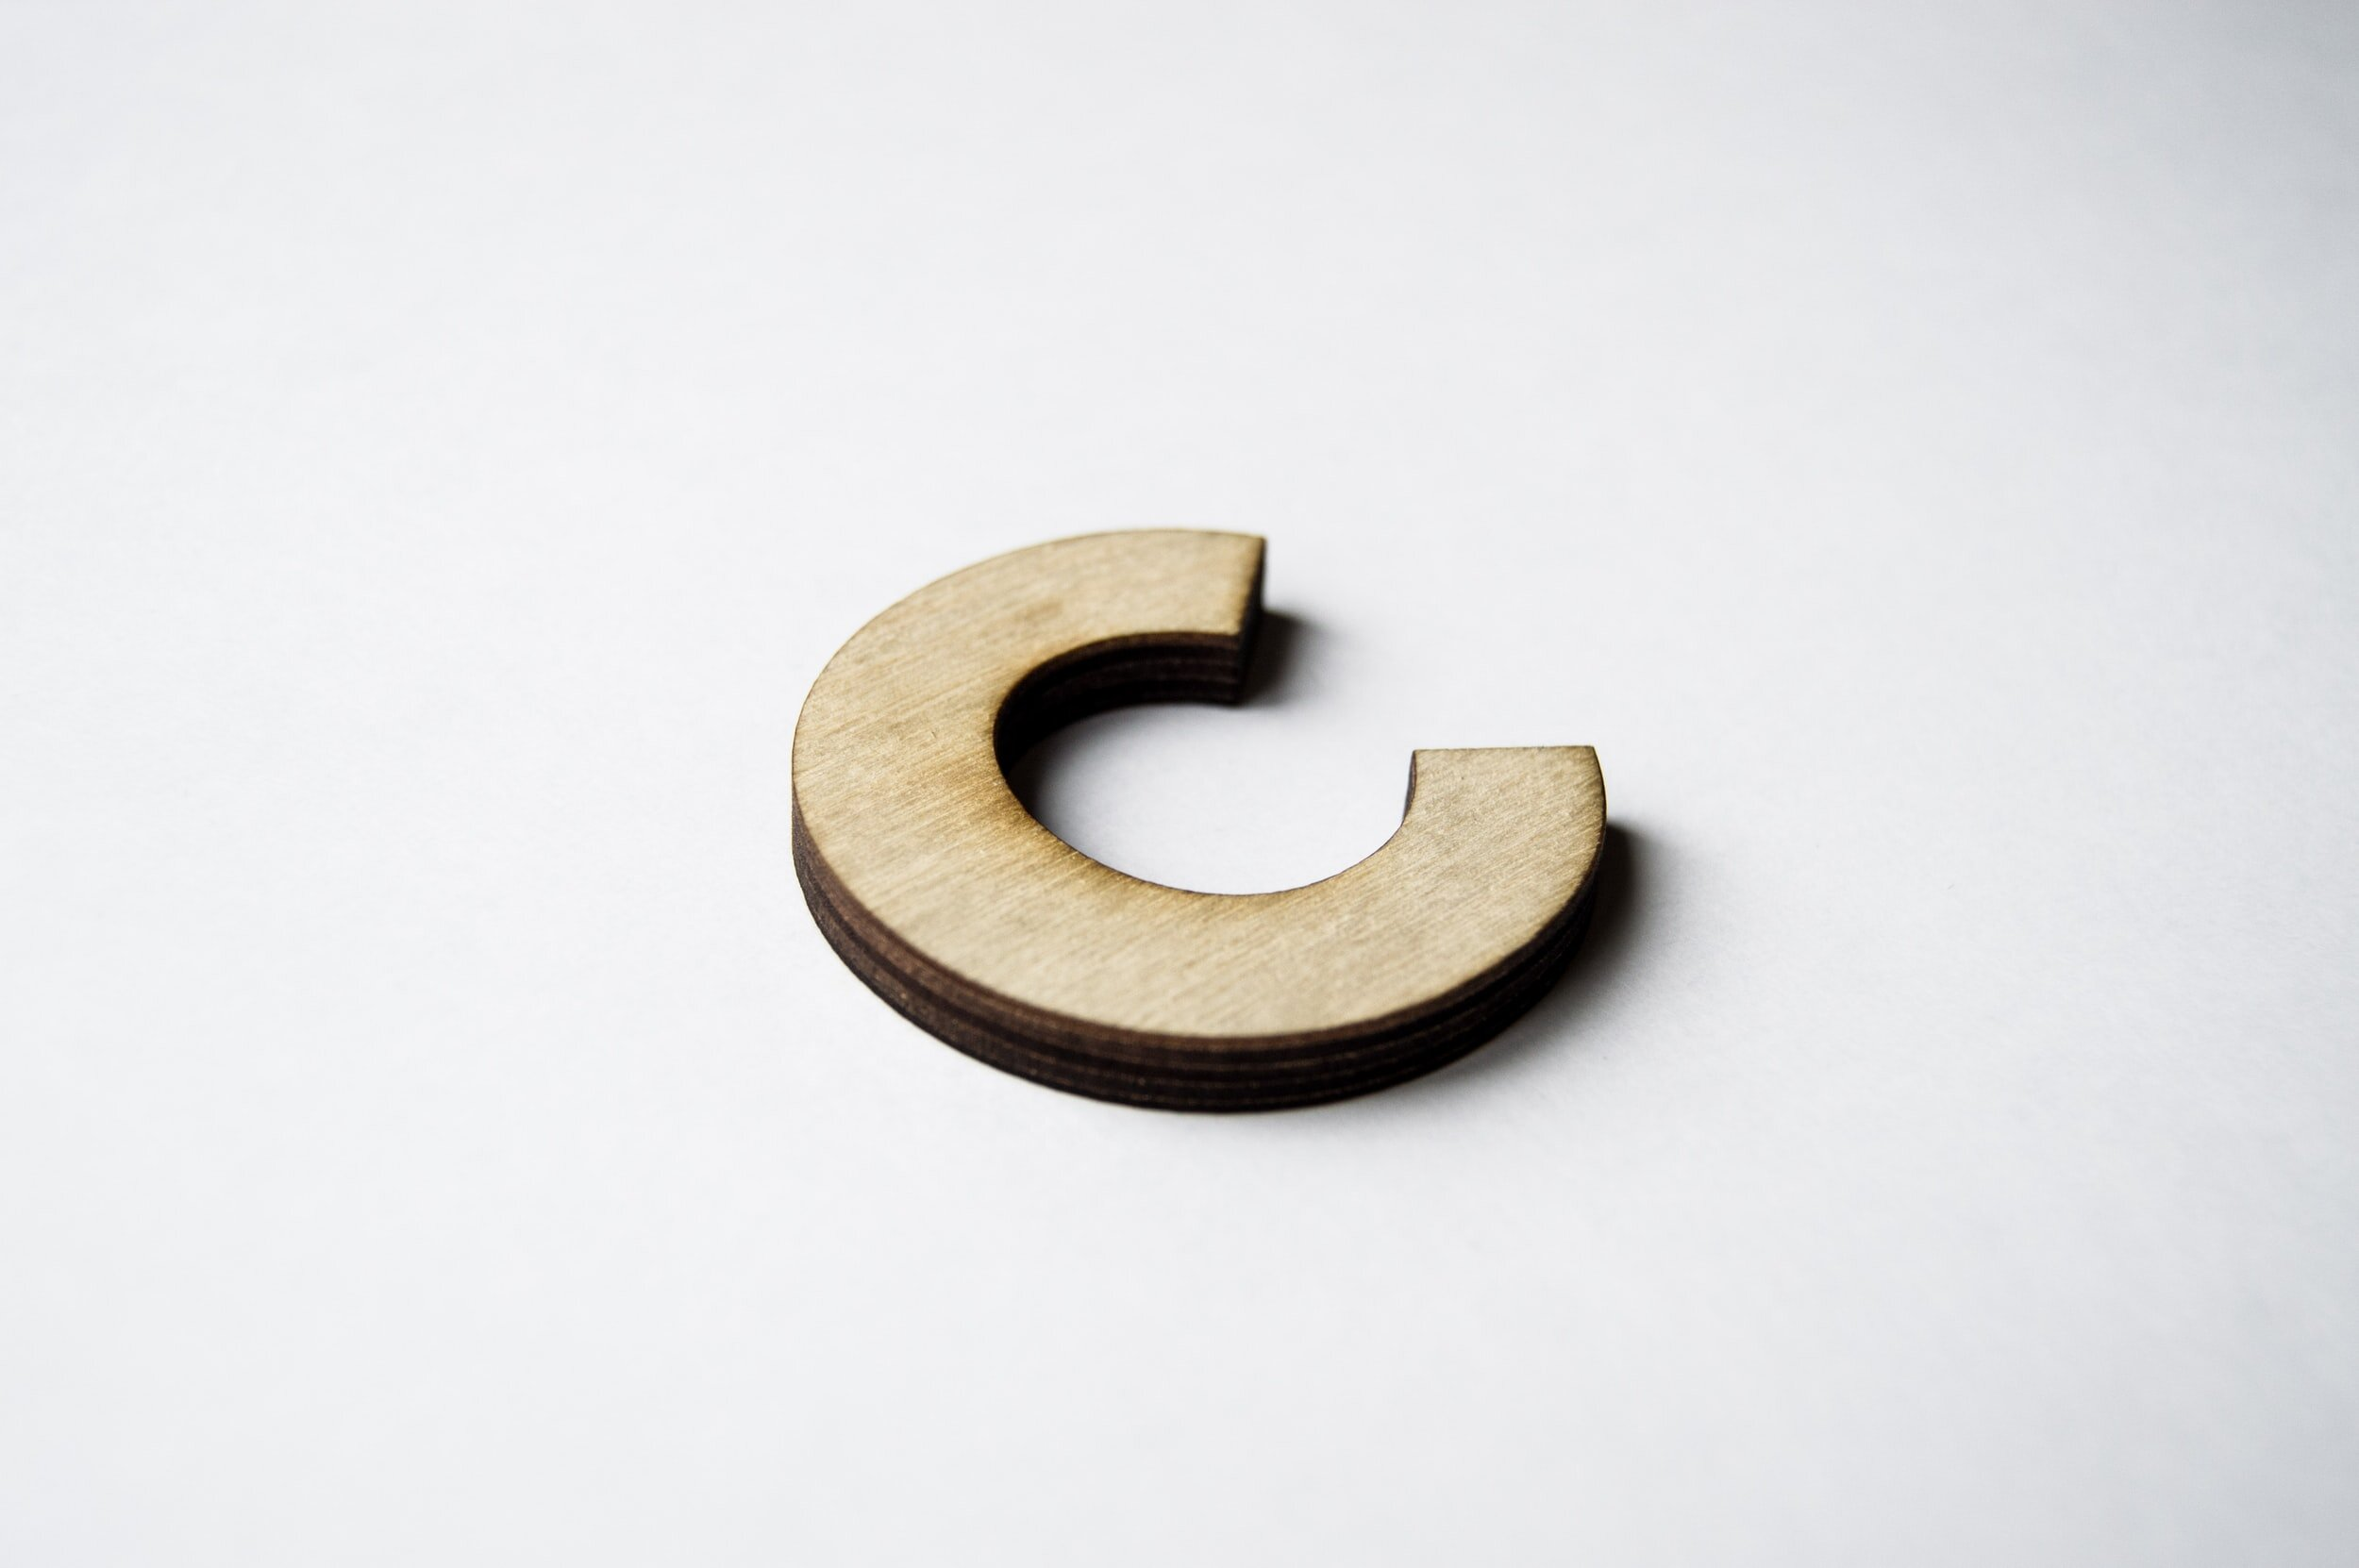 wooden-c-in-on-white-backdrop